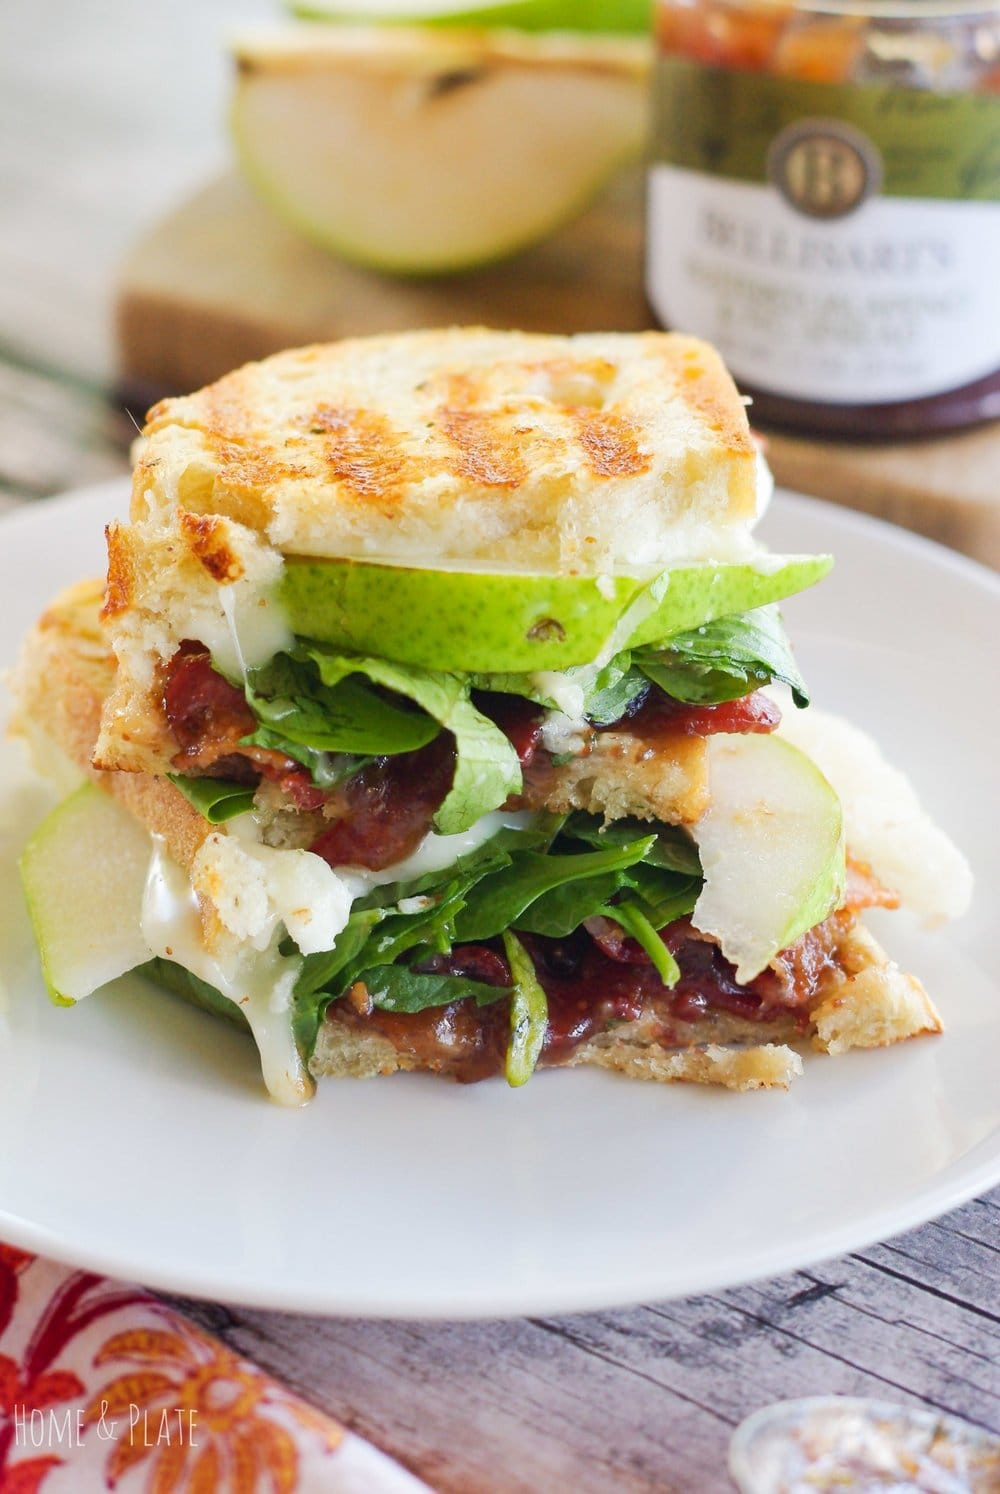 Pear, Bacon & Brie Panini